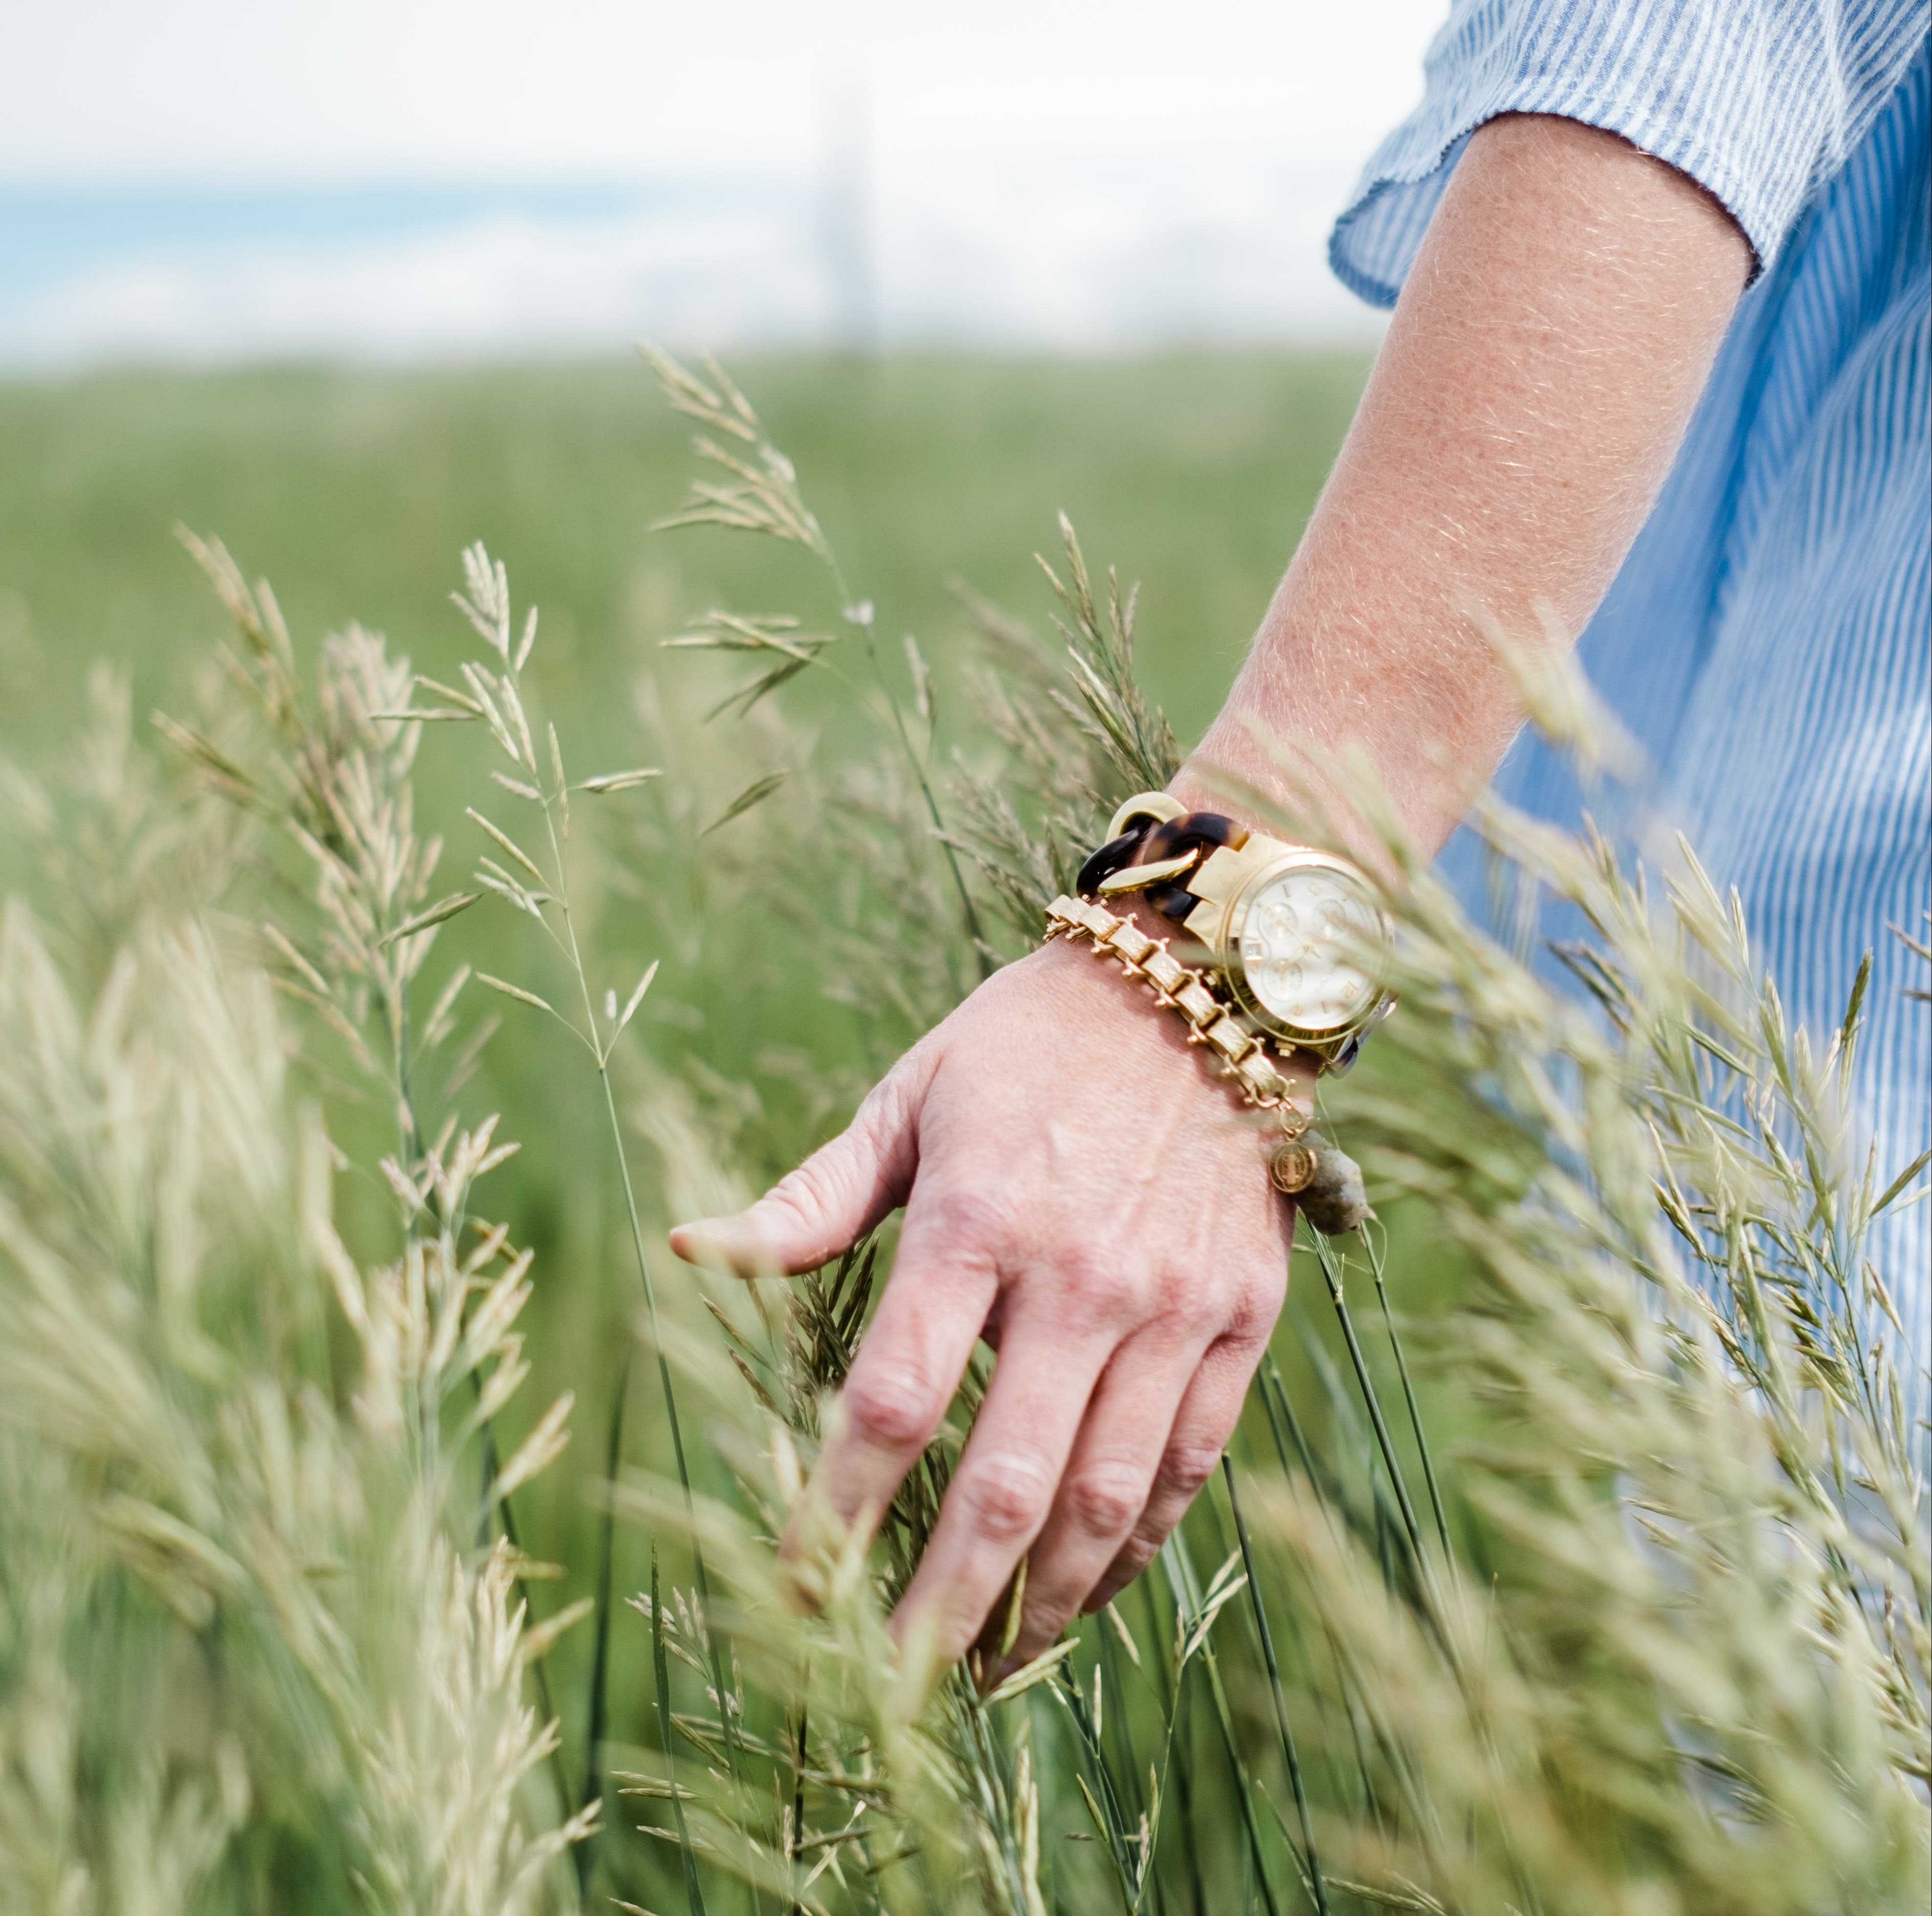 person brushes hand along tall grass